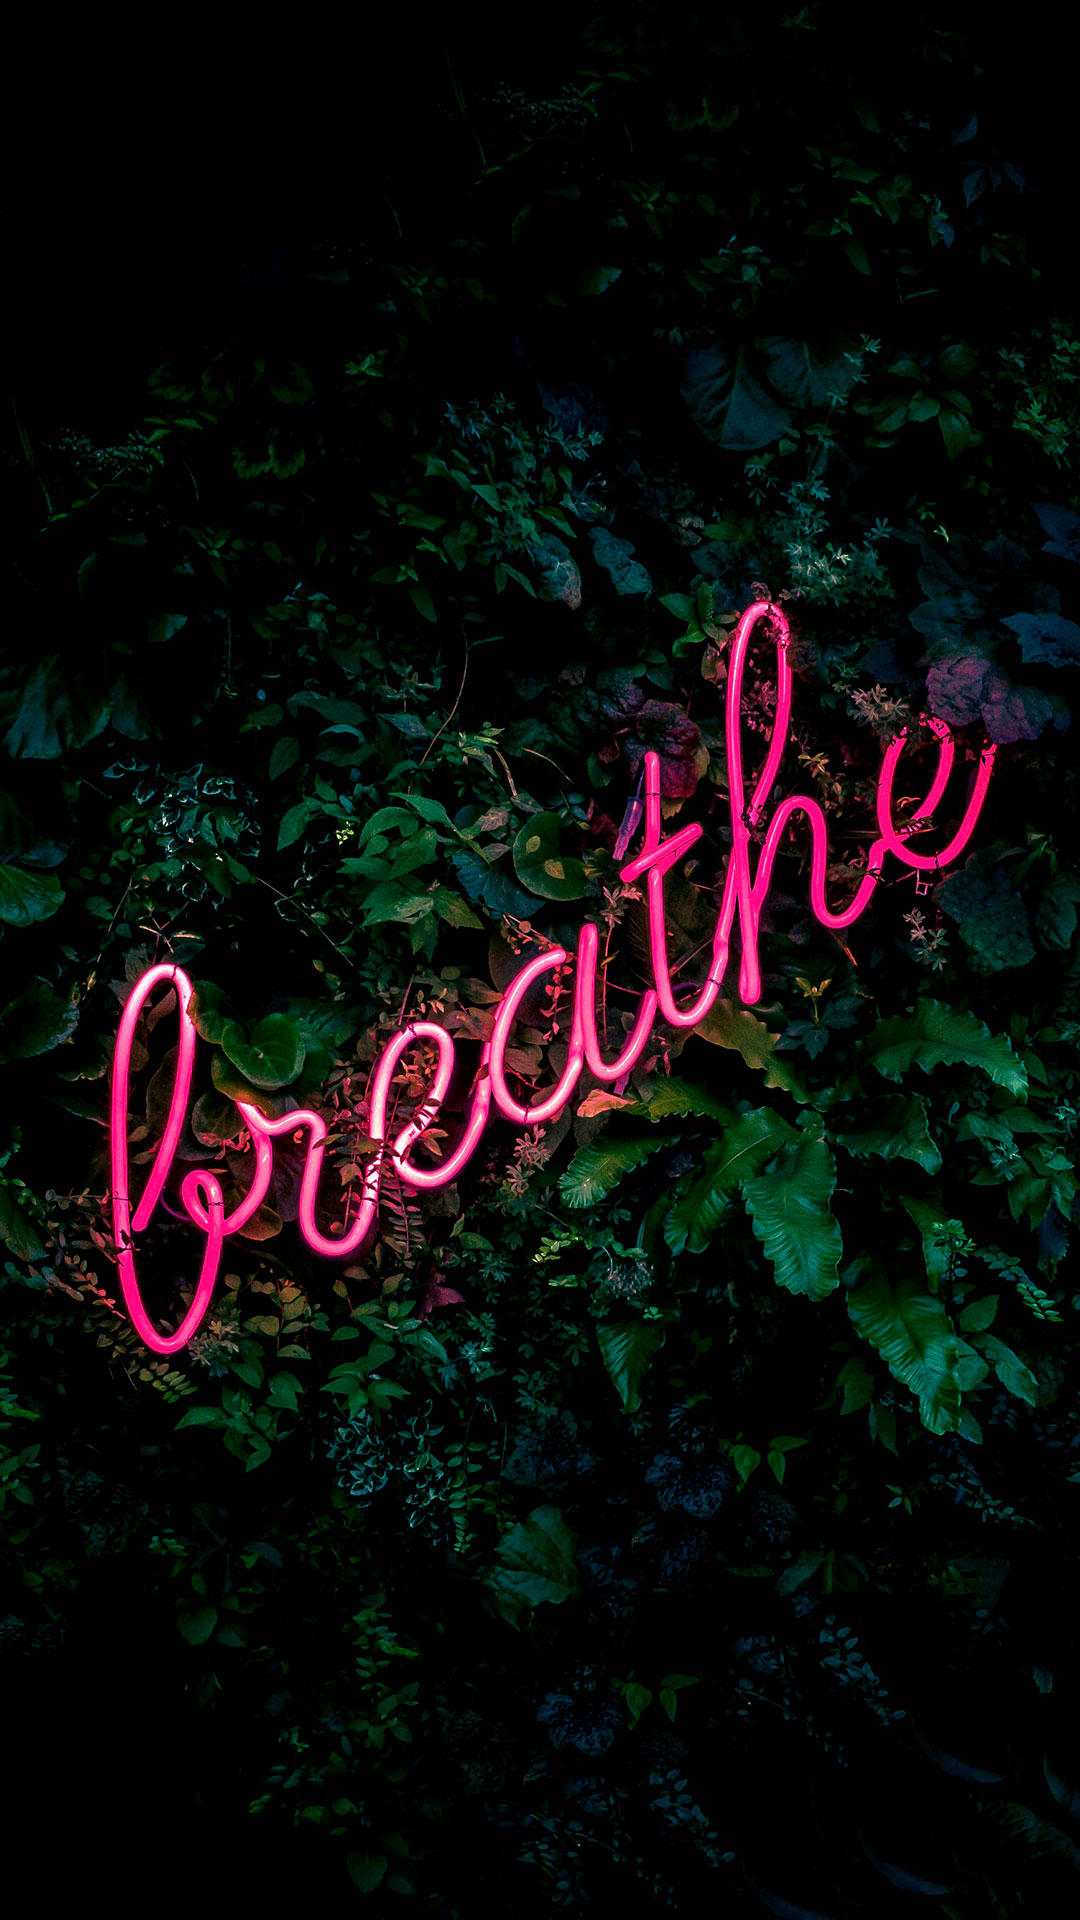 iPhone wallpaper neon sign breathe Fonds d'écran iPhone du 09/05/2018